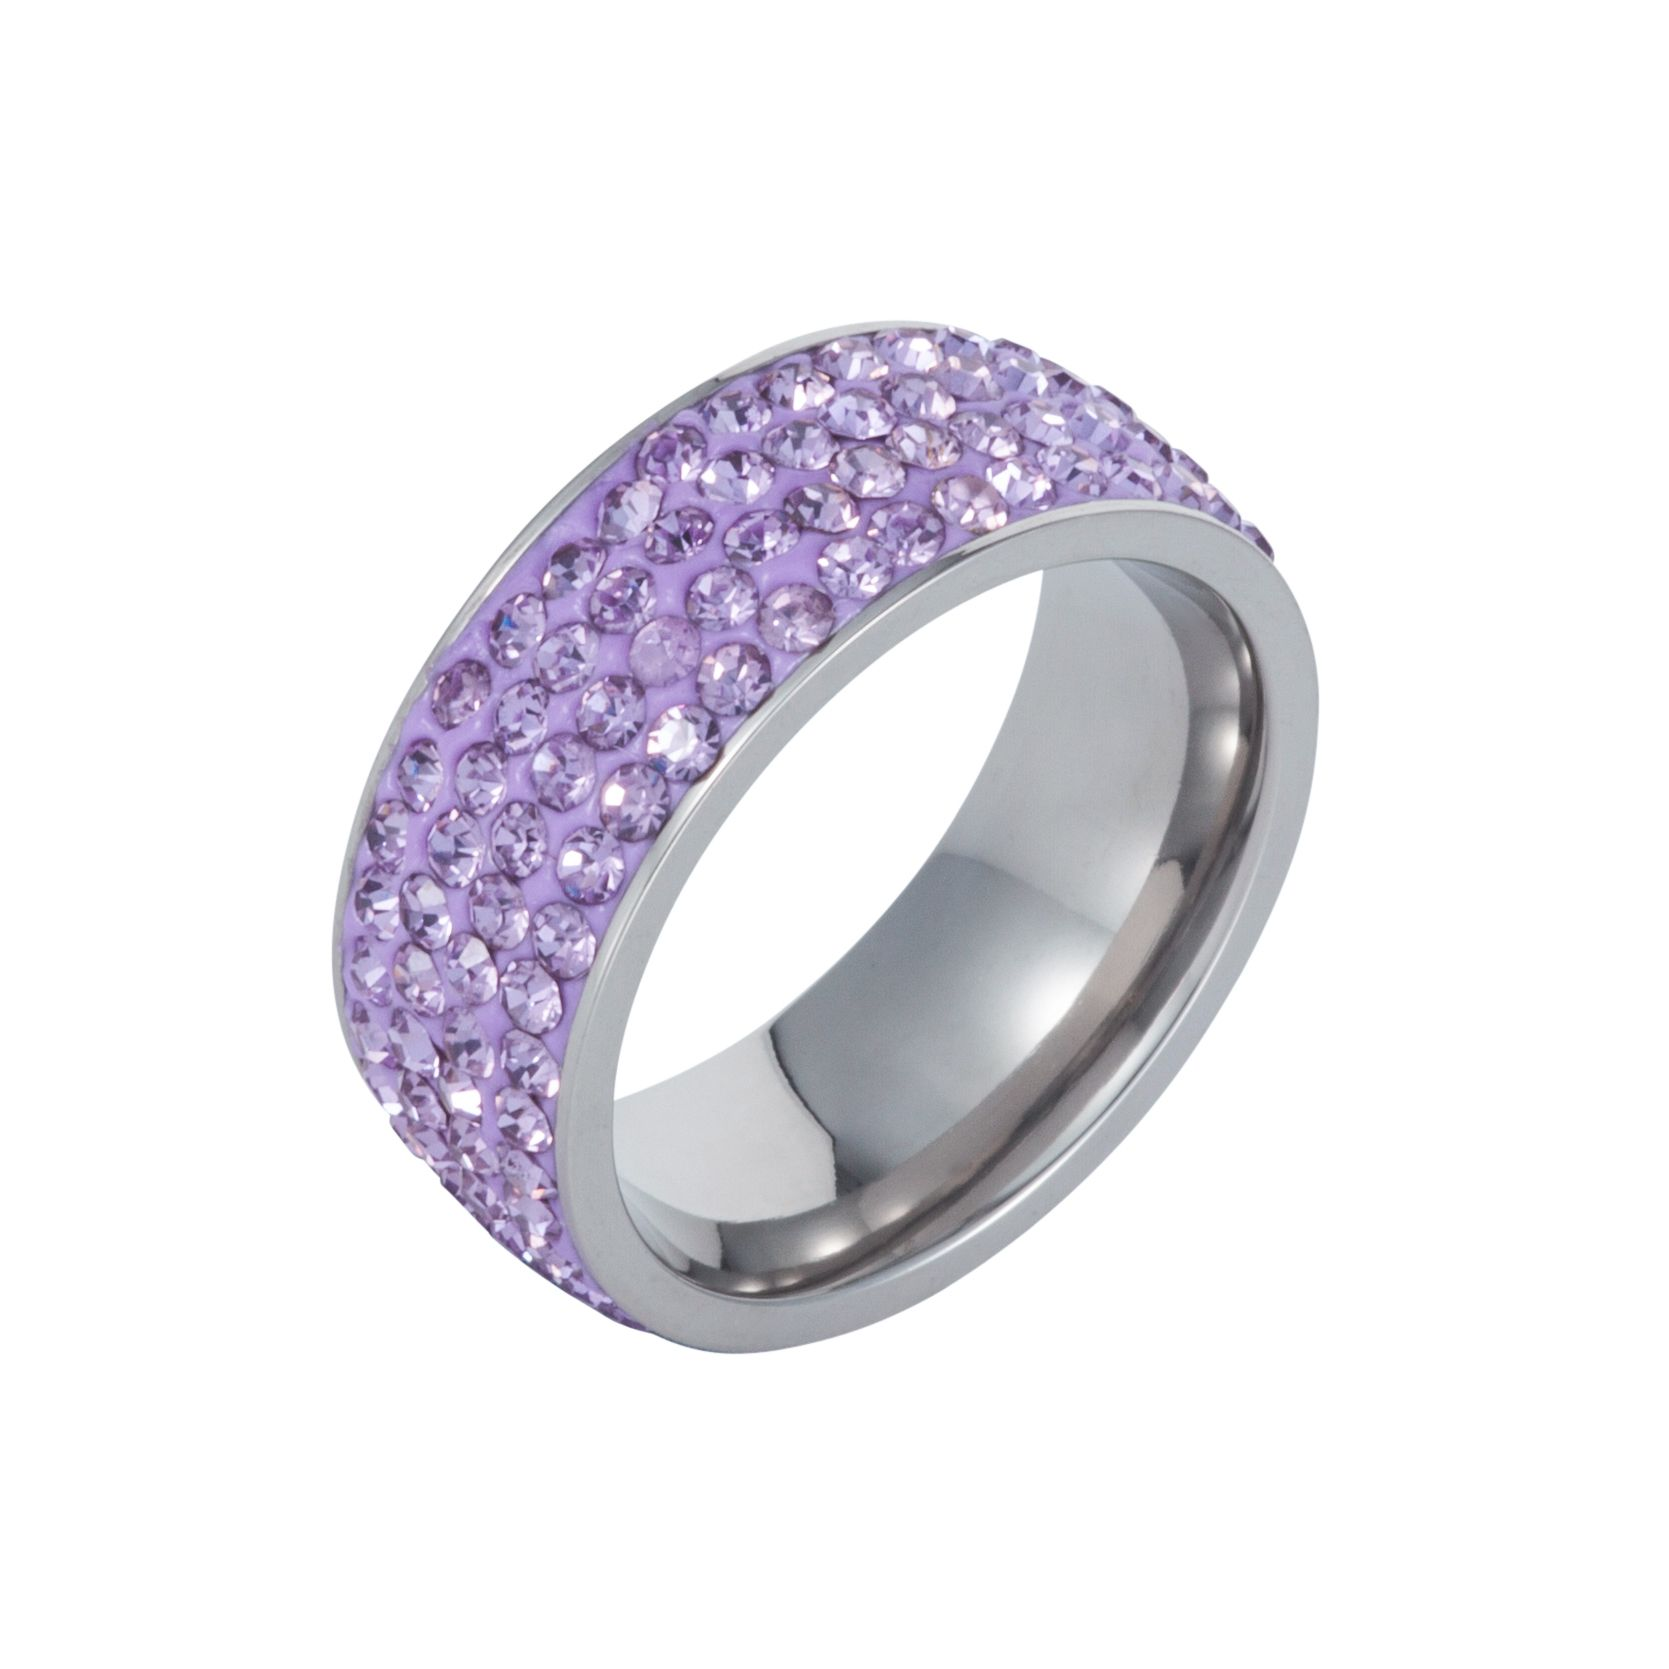 Stainless steel cubic zirconia violet ring